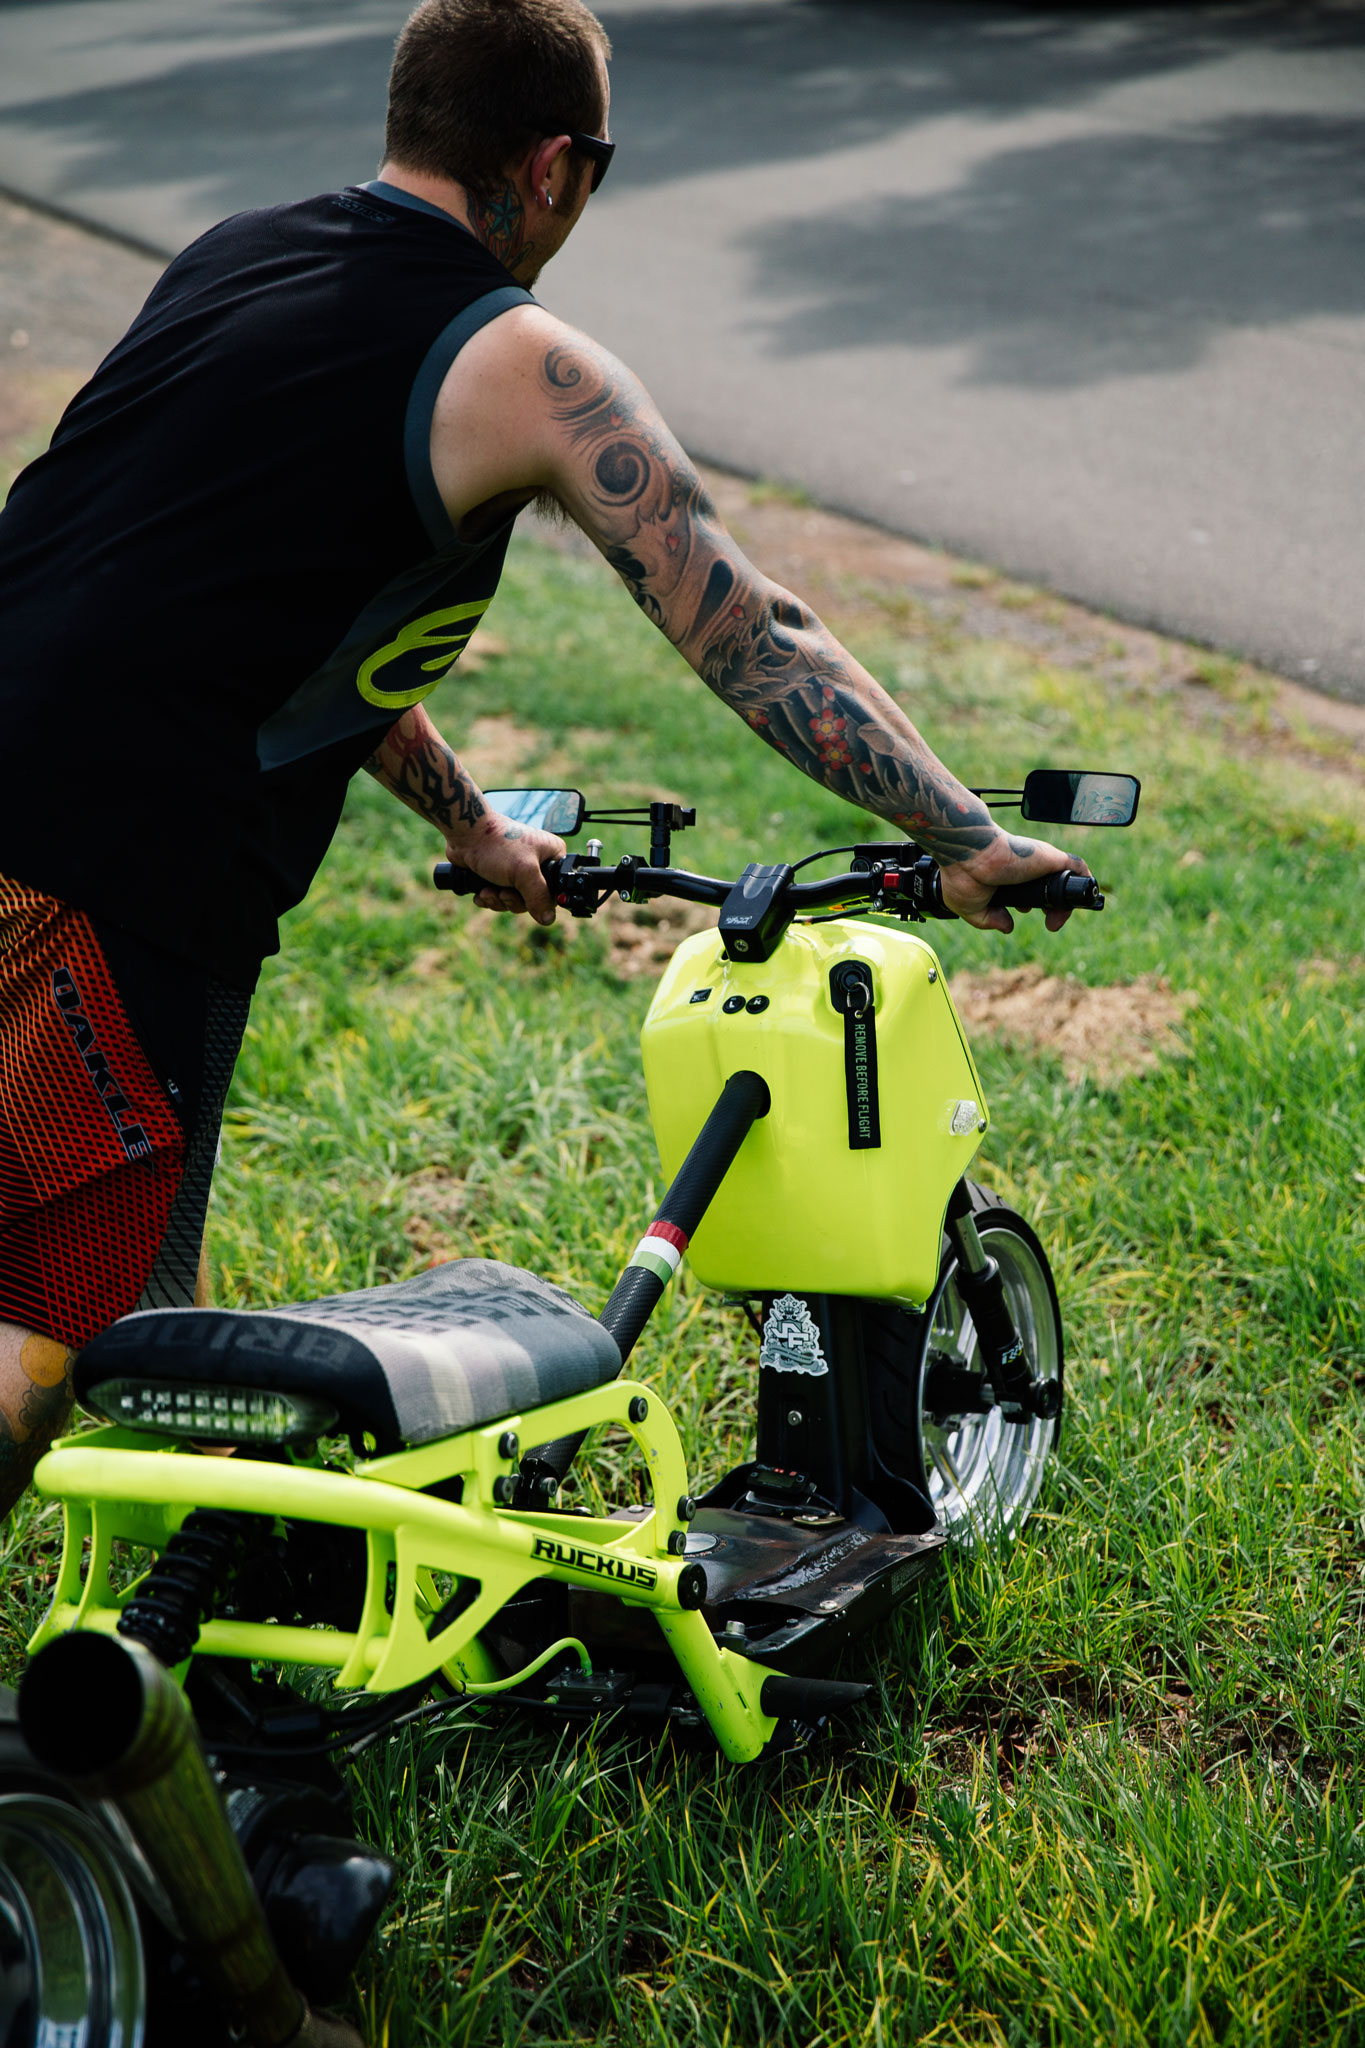 honda_ruckus_dirty_sanchez-136